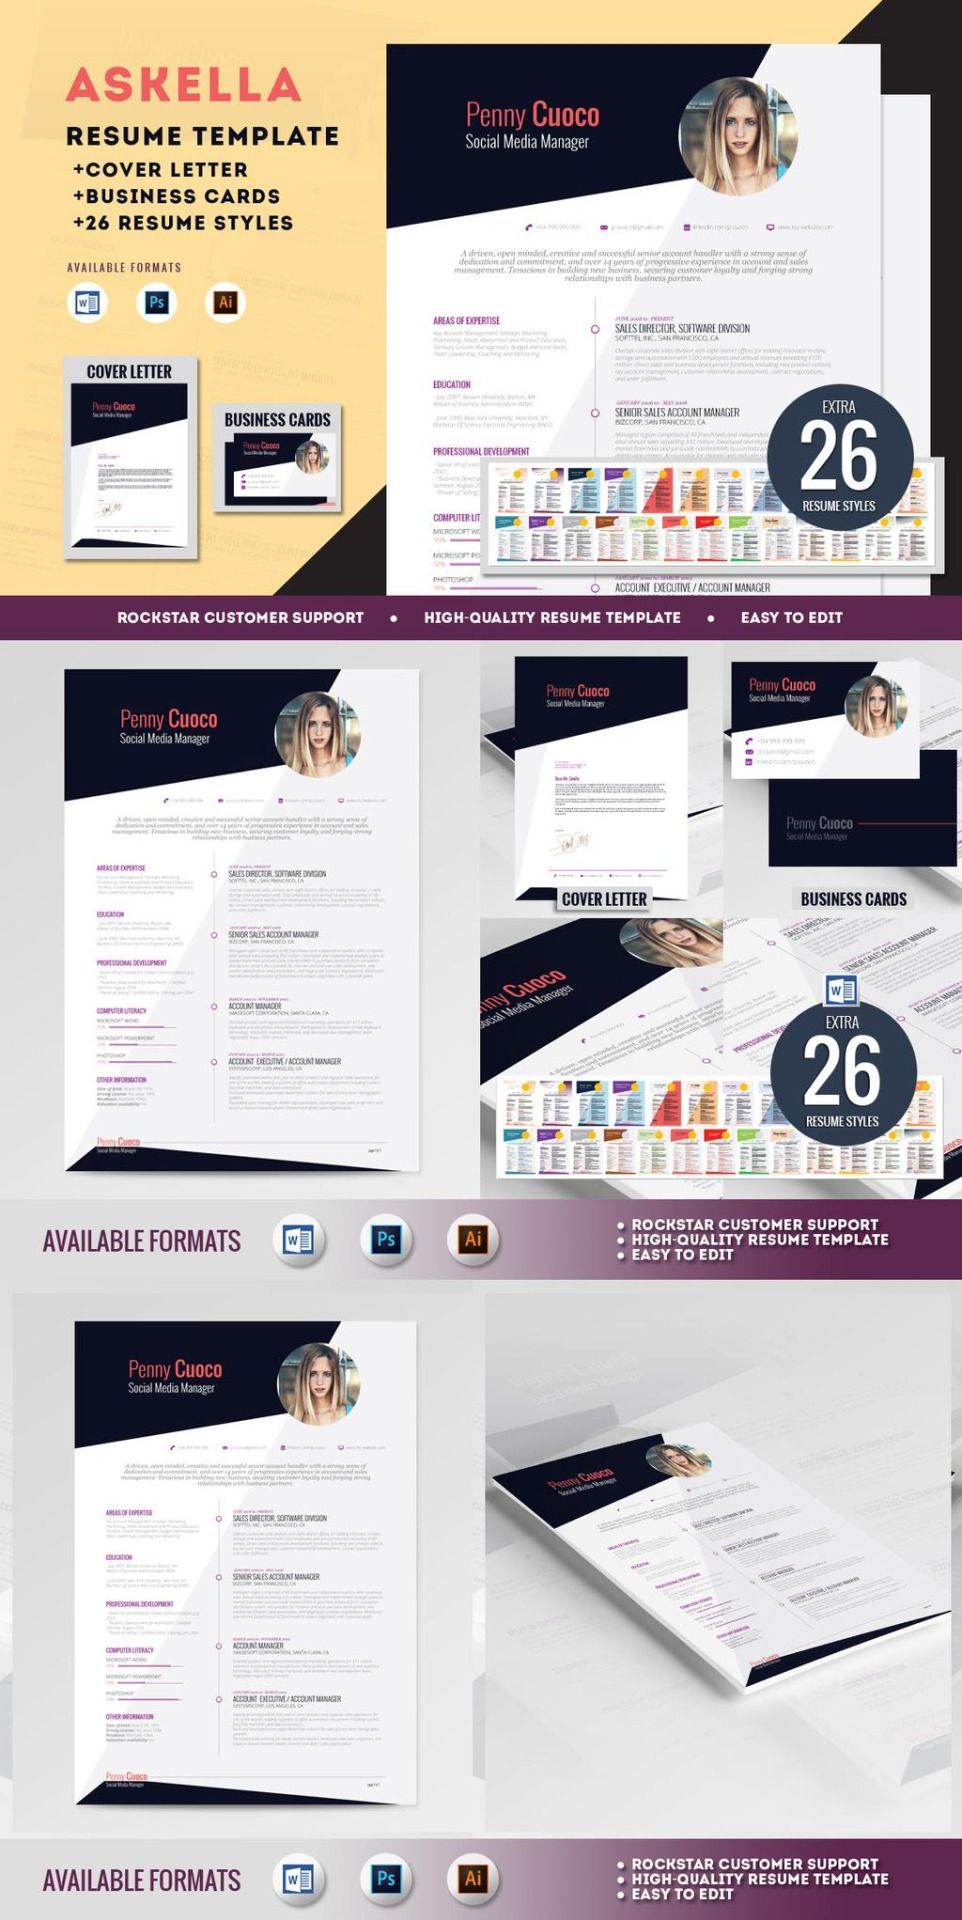 Resume Template FREE Cover Letter FREE Business